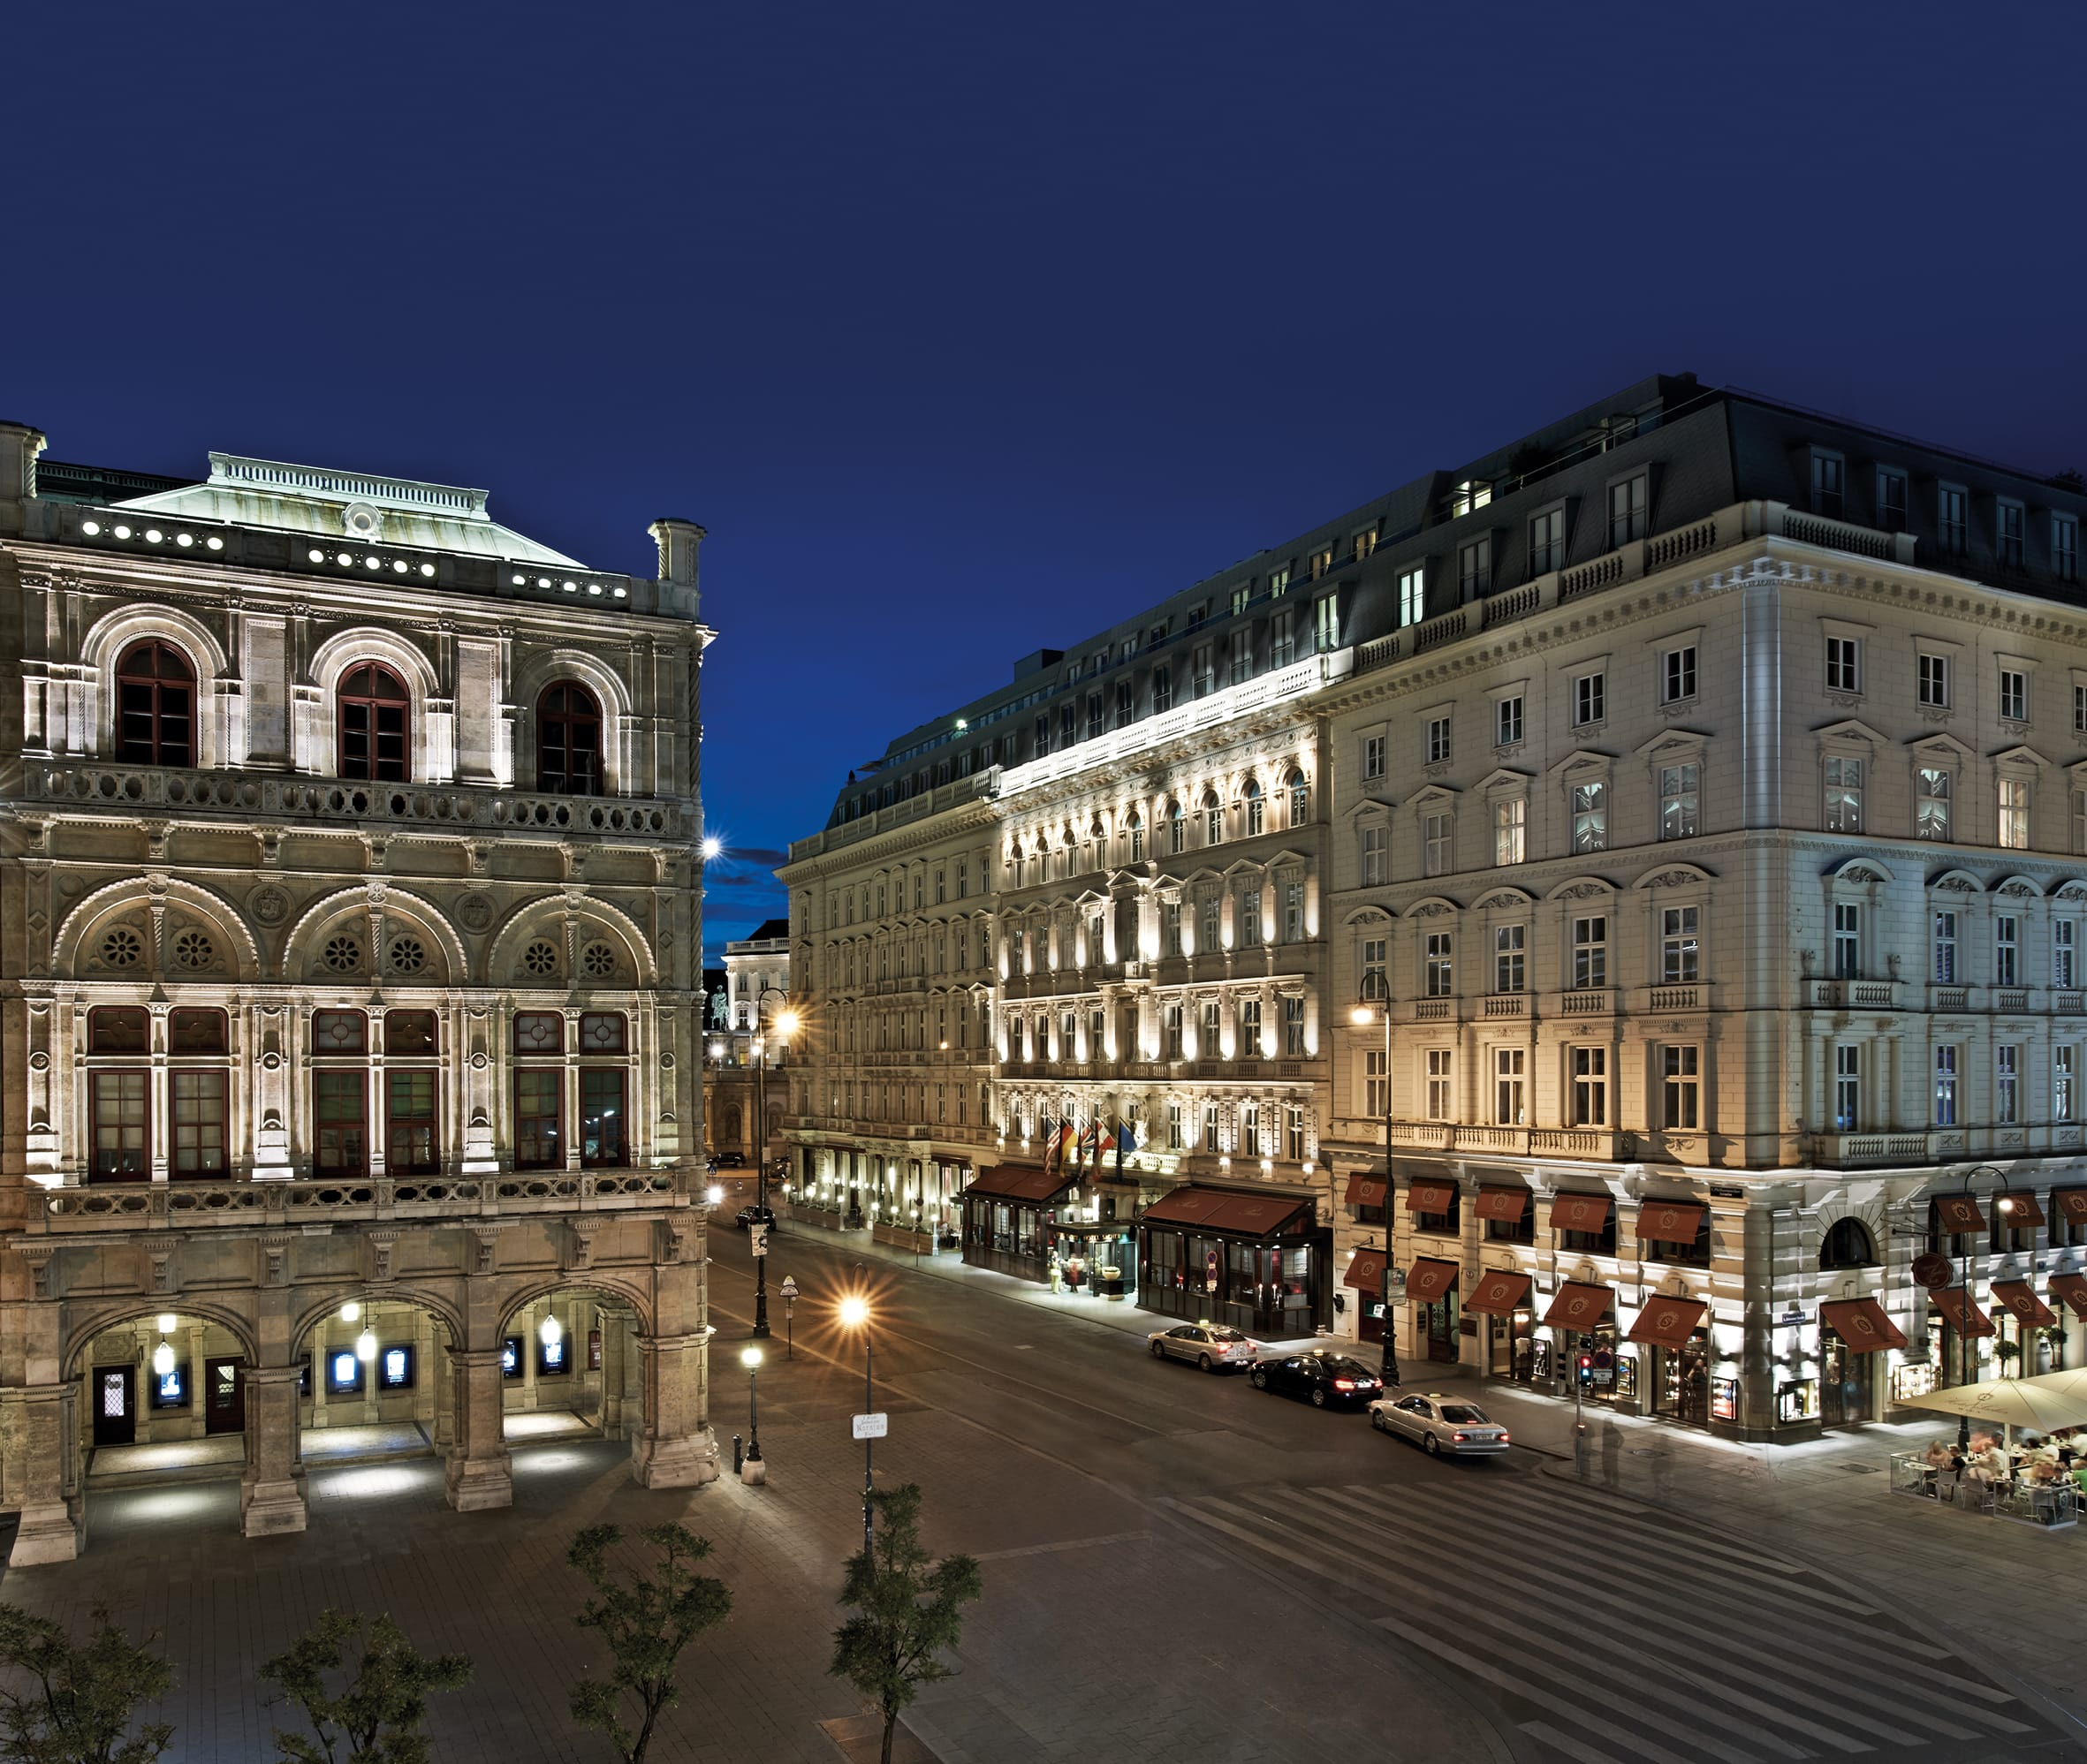 Postcard From: Hotel Sacher, Vienna